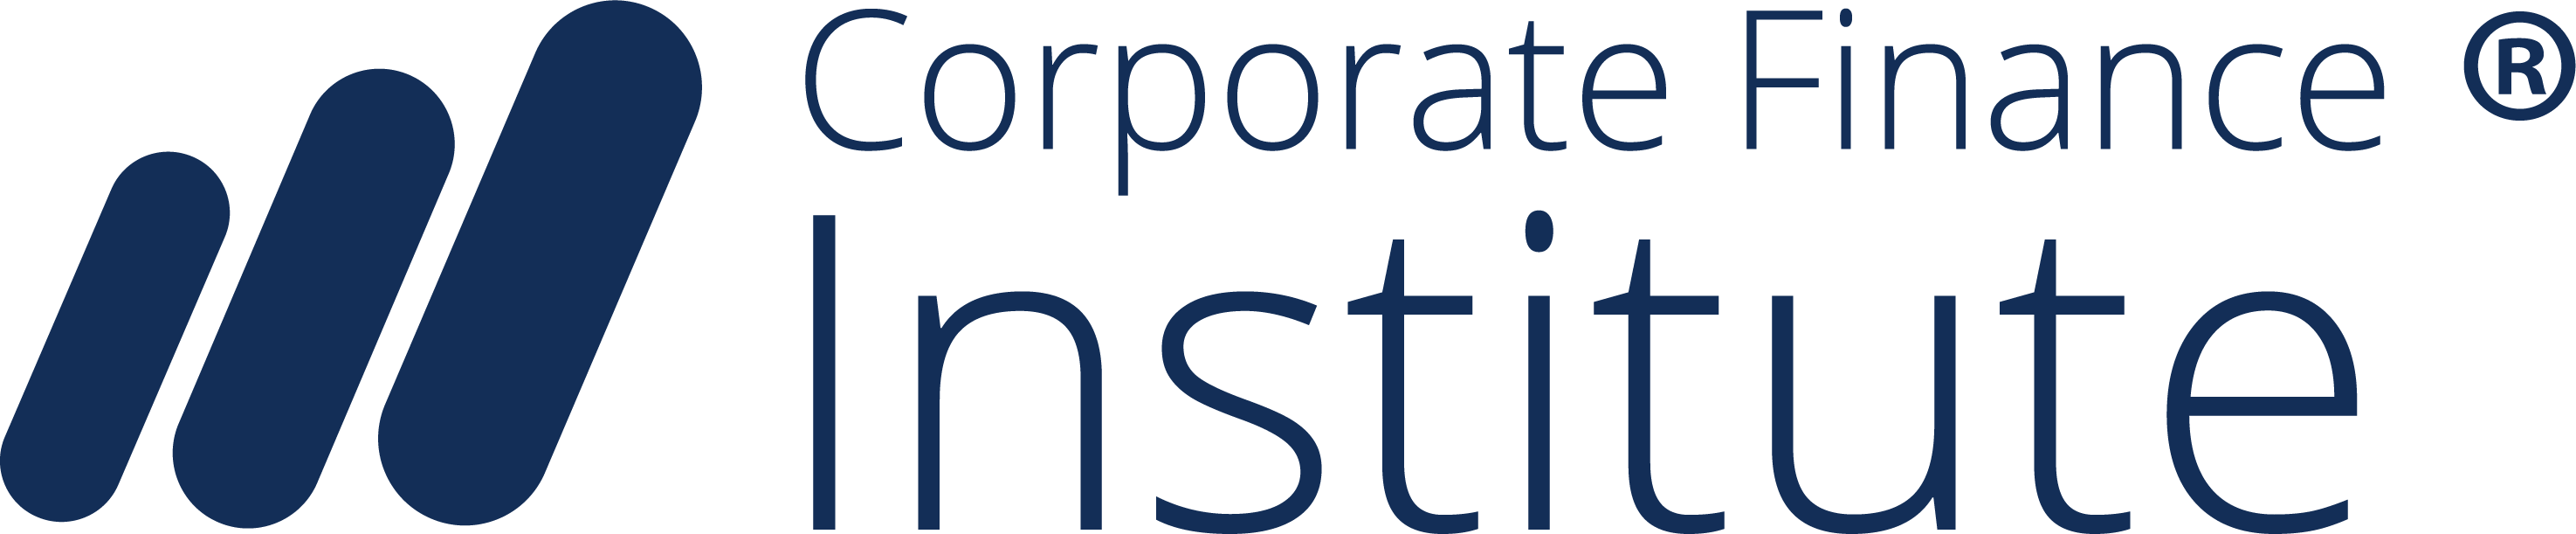 Corporate Finance Institute Logo full